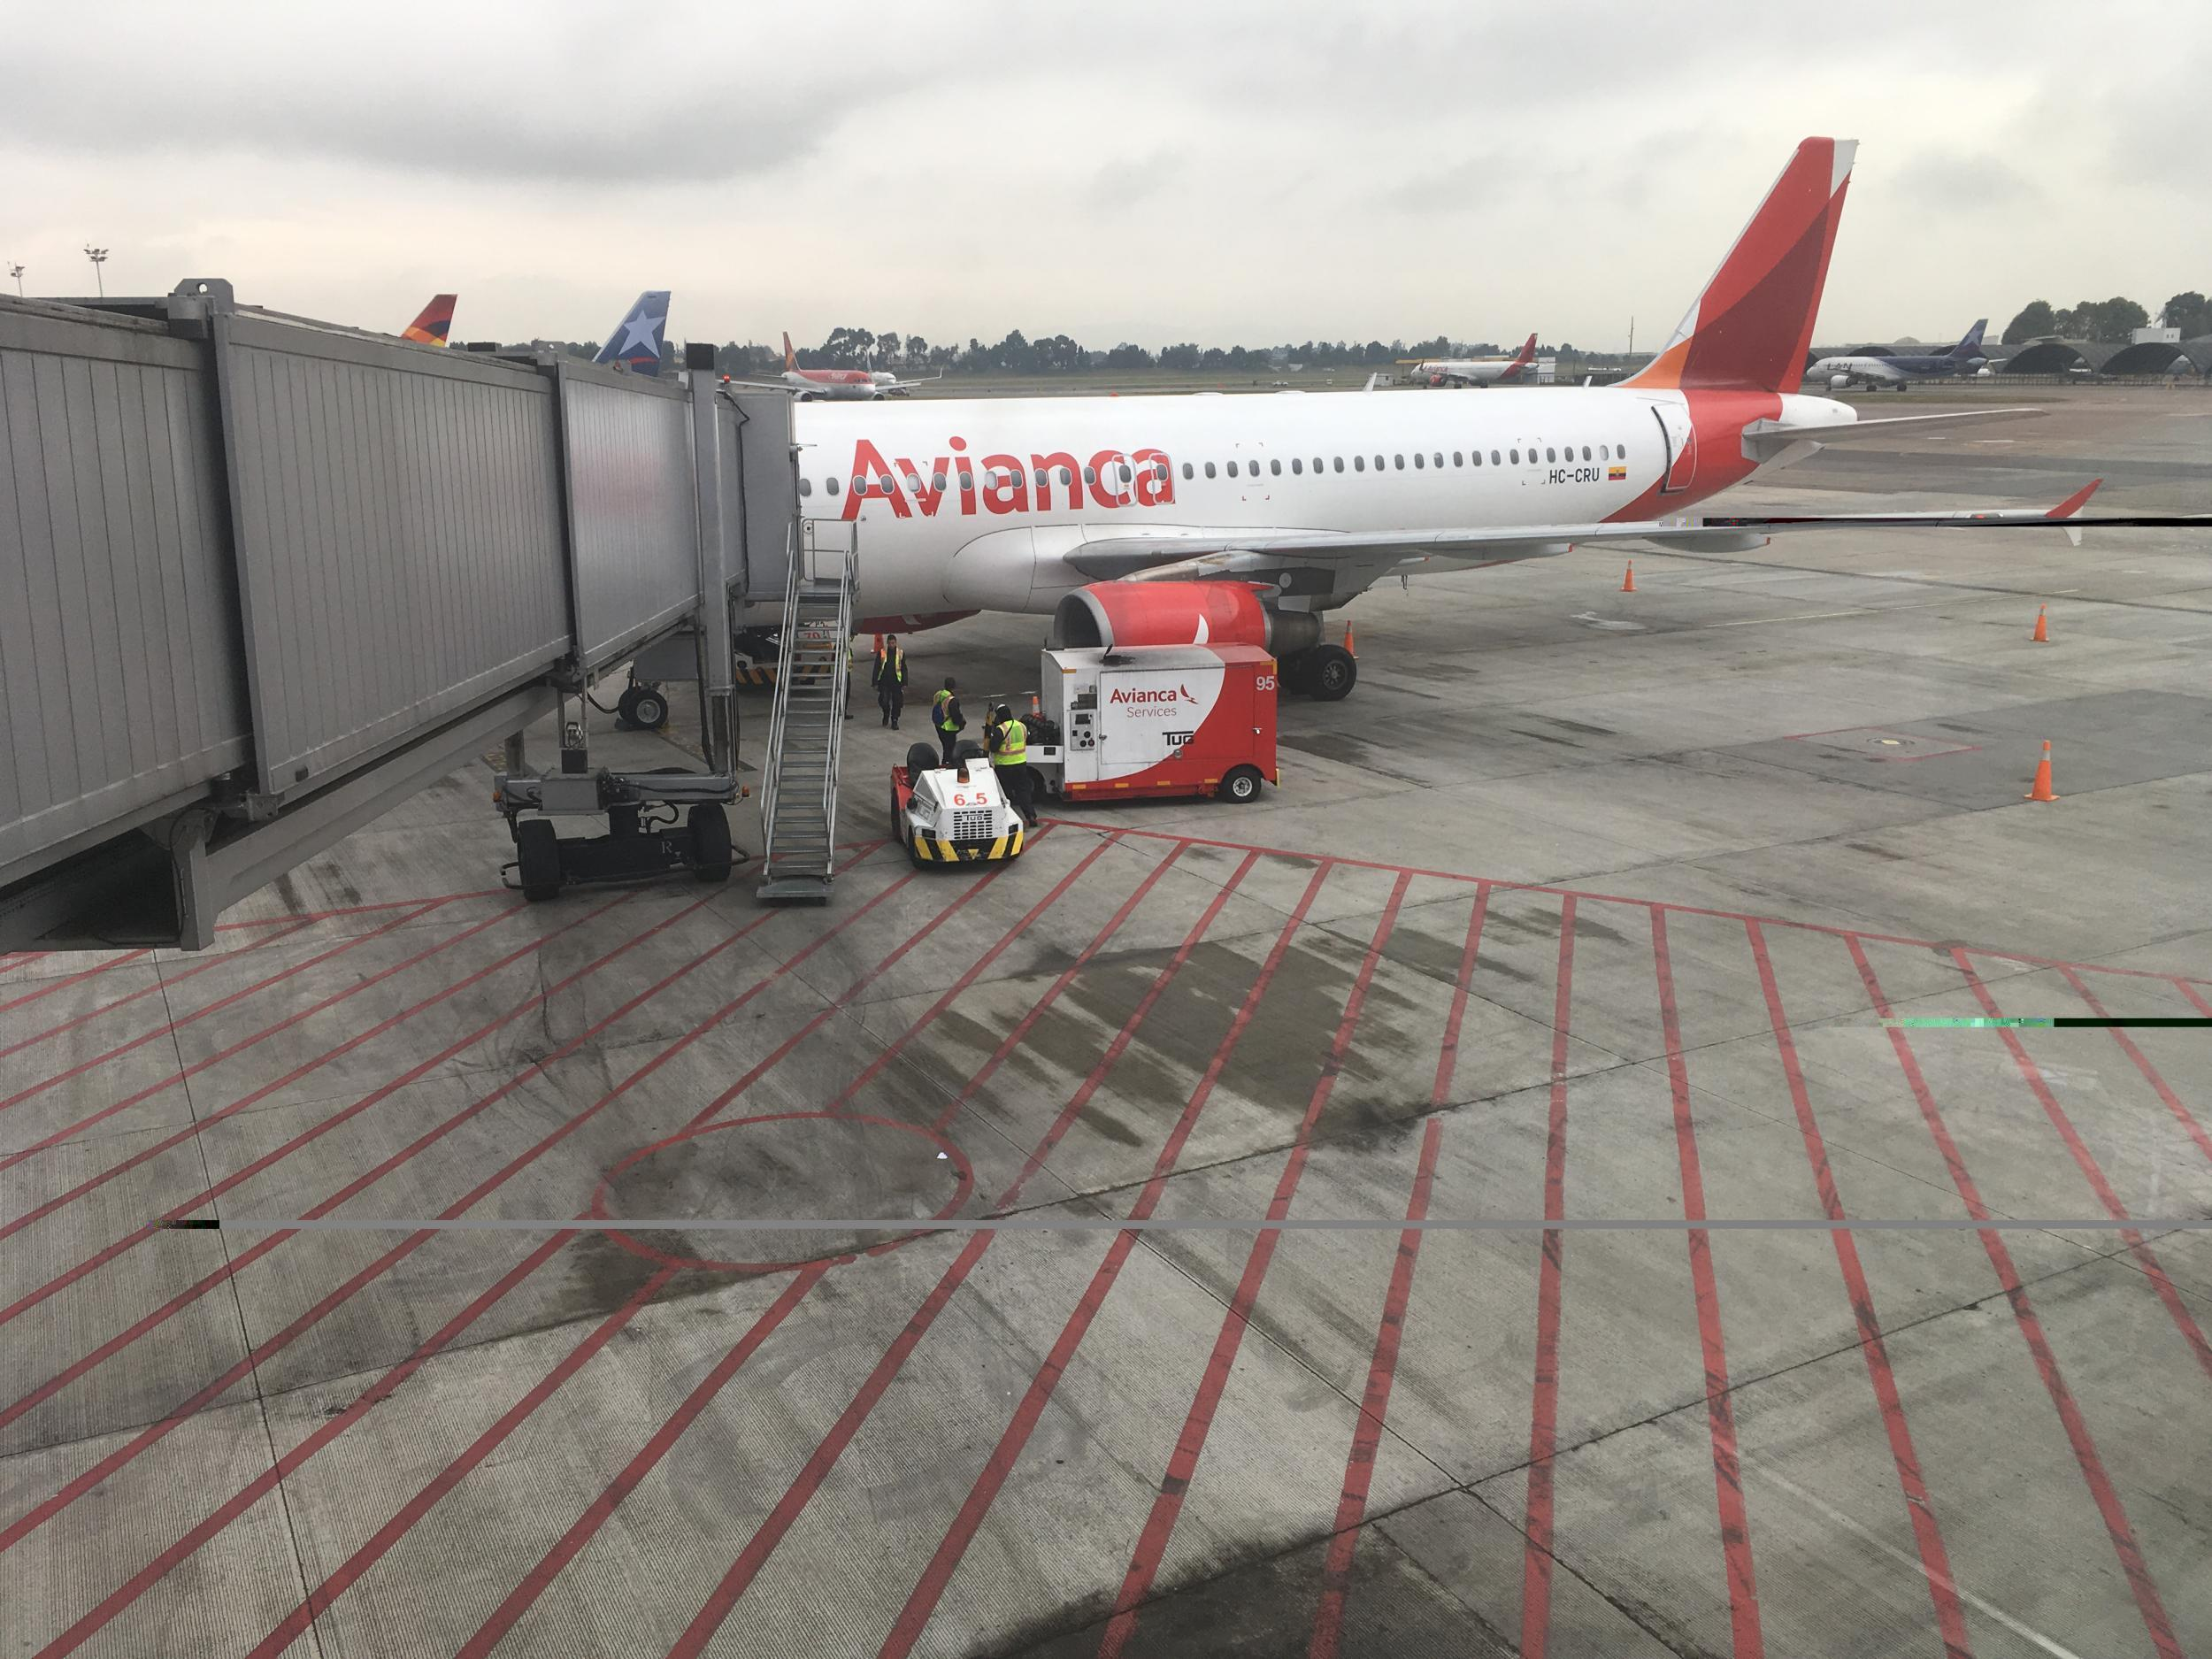 Why south american aviation scene is unrecognisable today from its why south american aviation scene is unrecognisable today from its recent past the independent fandeluxe Images